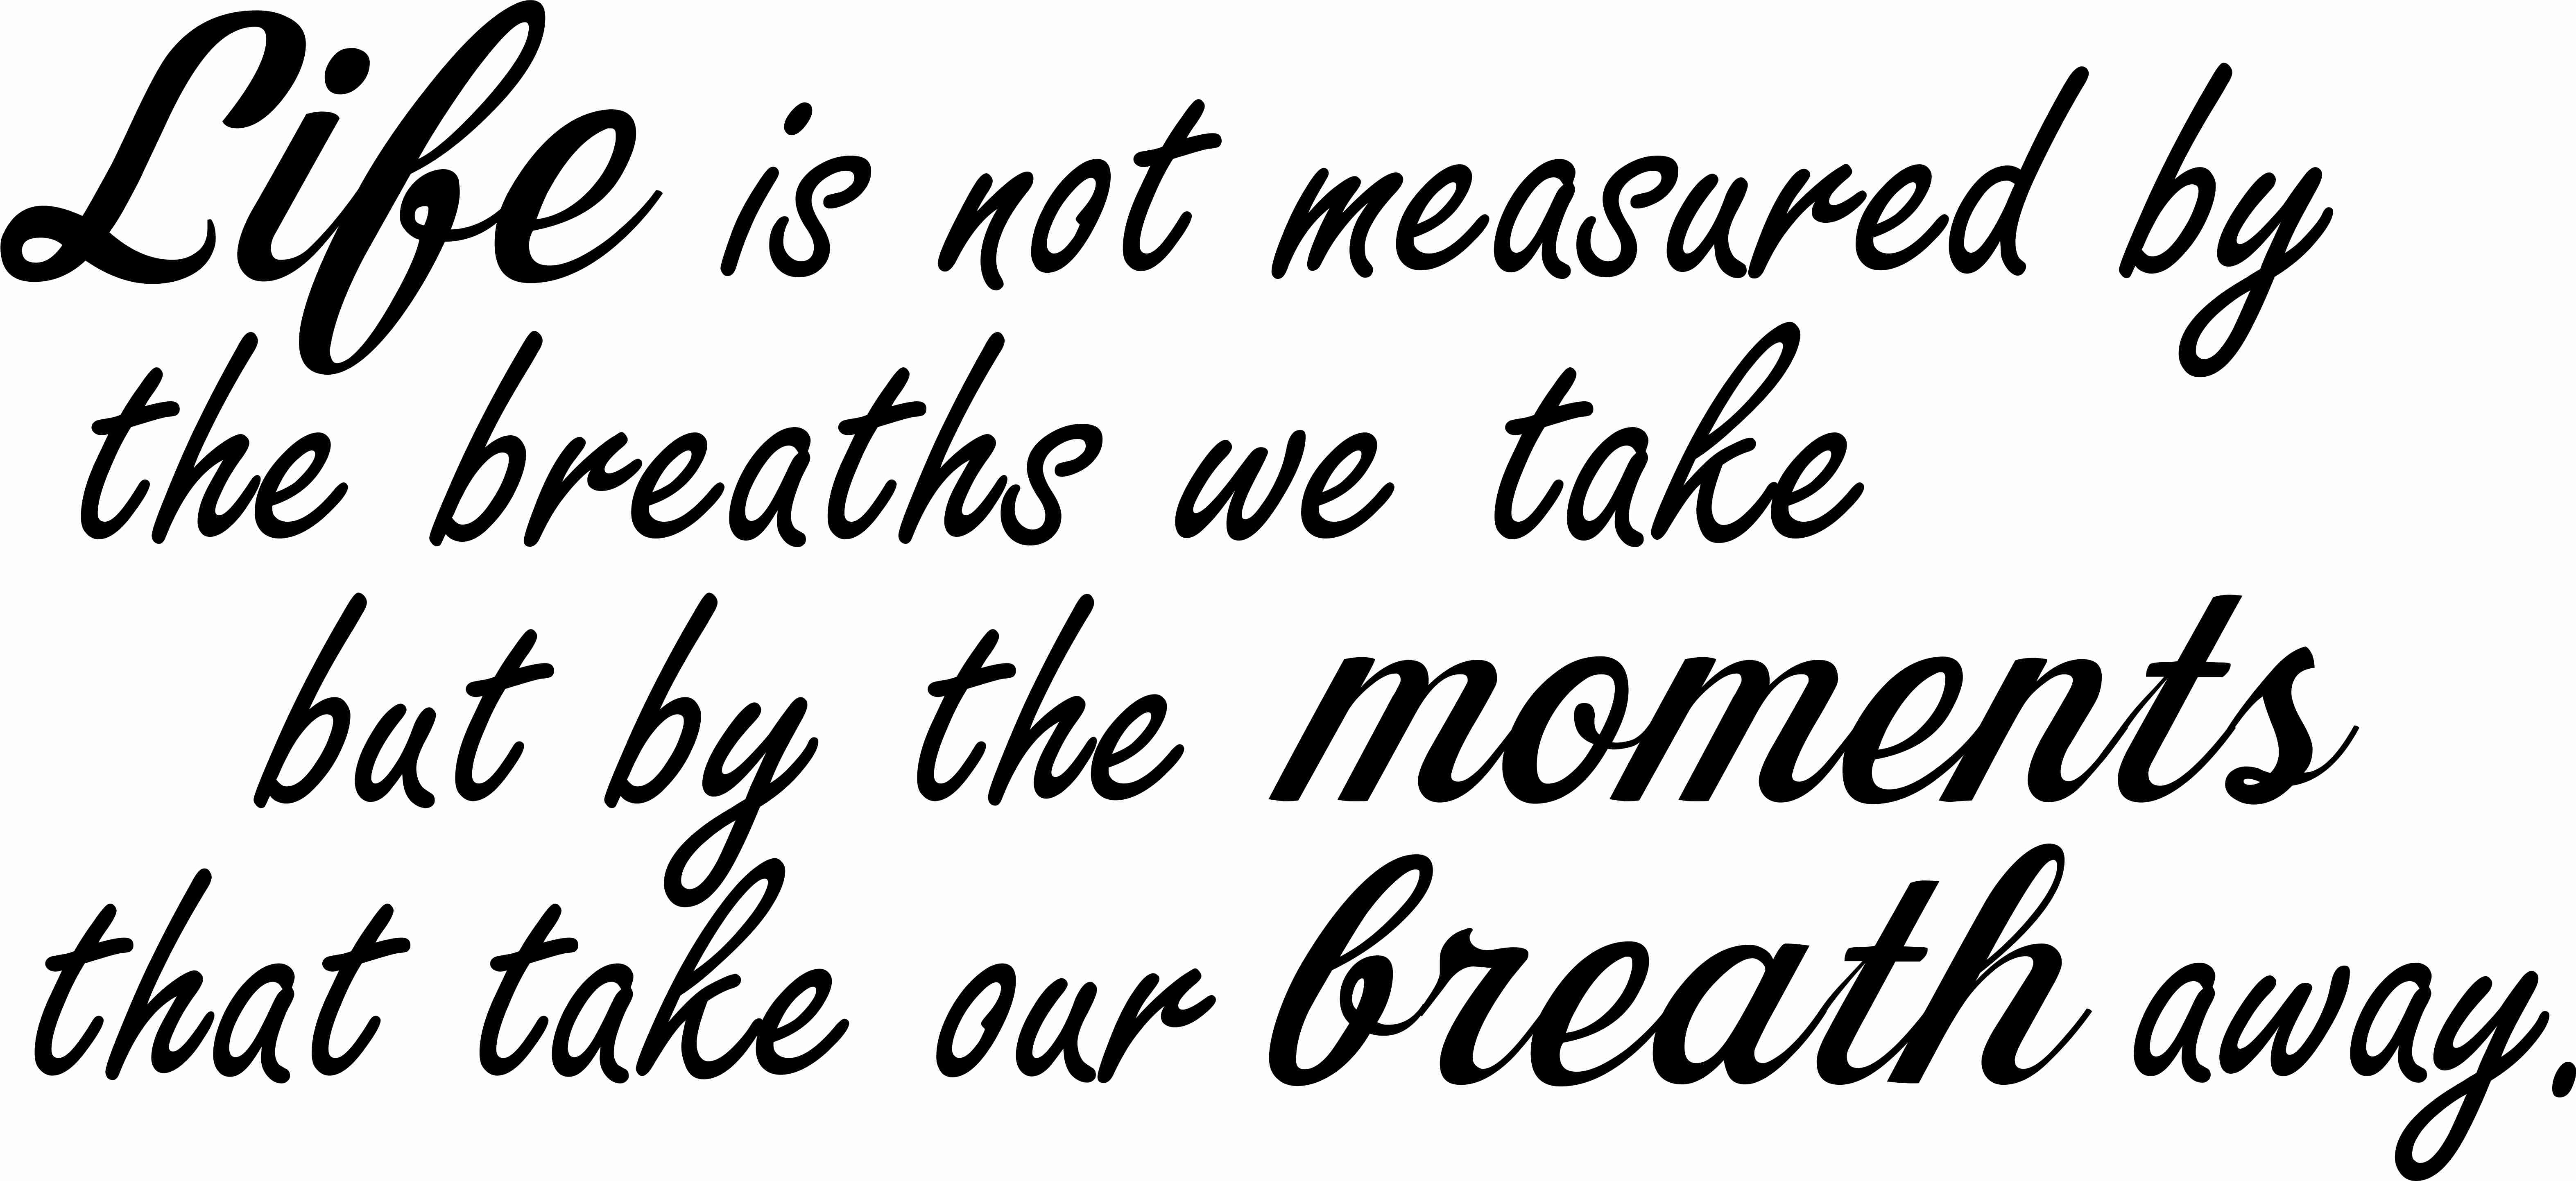 Life is not measured wall quote